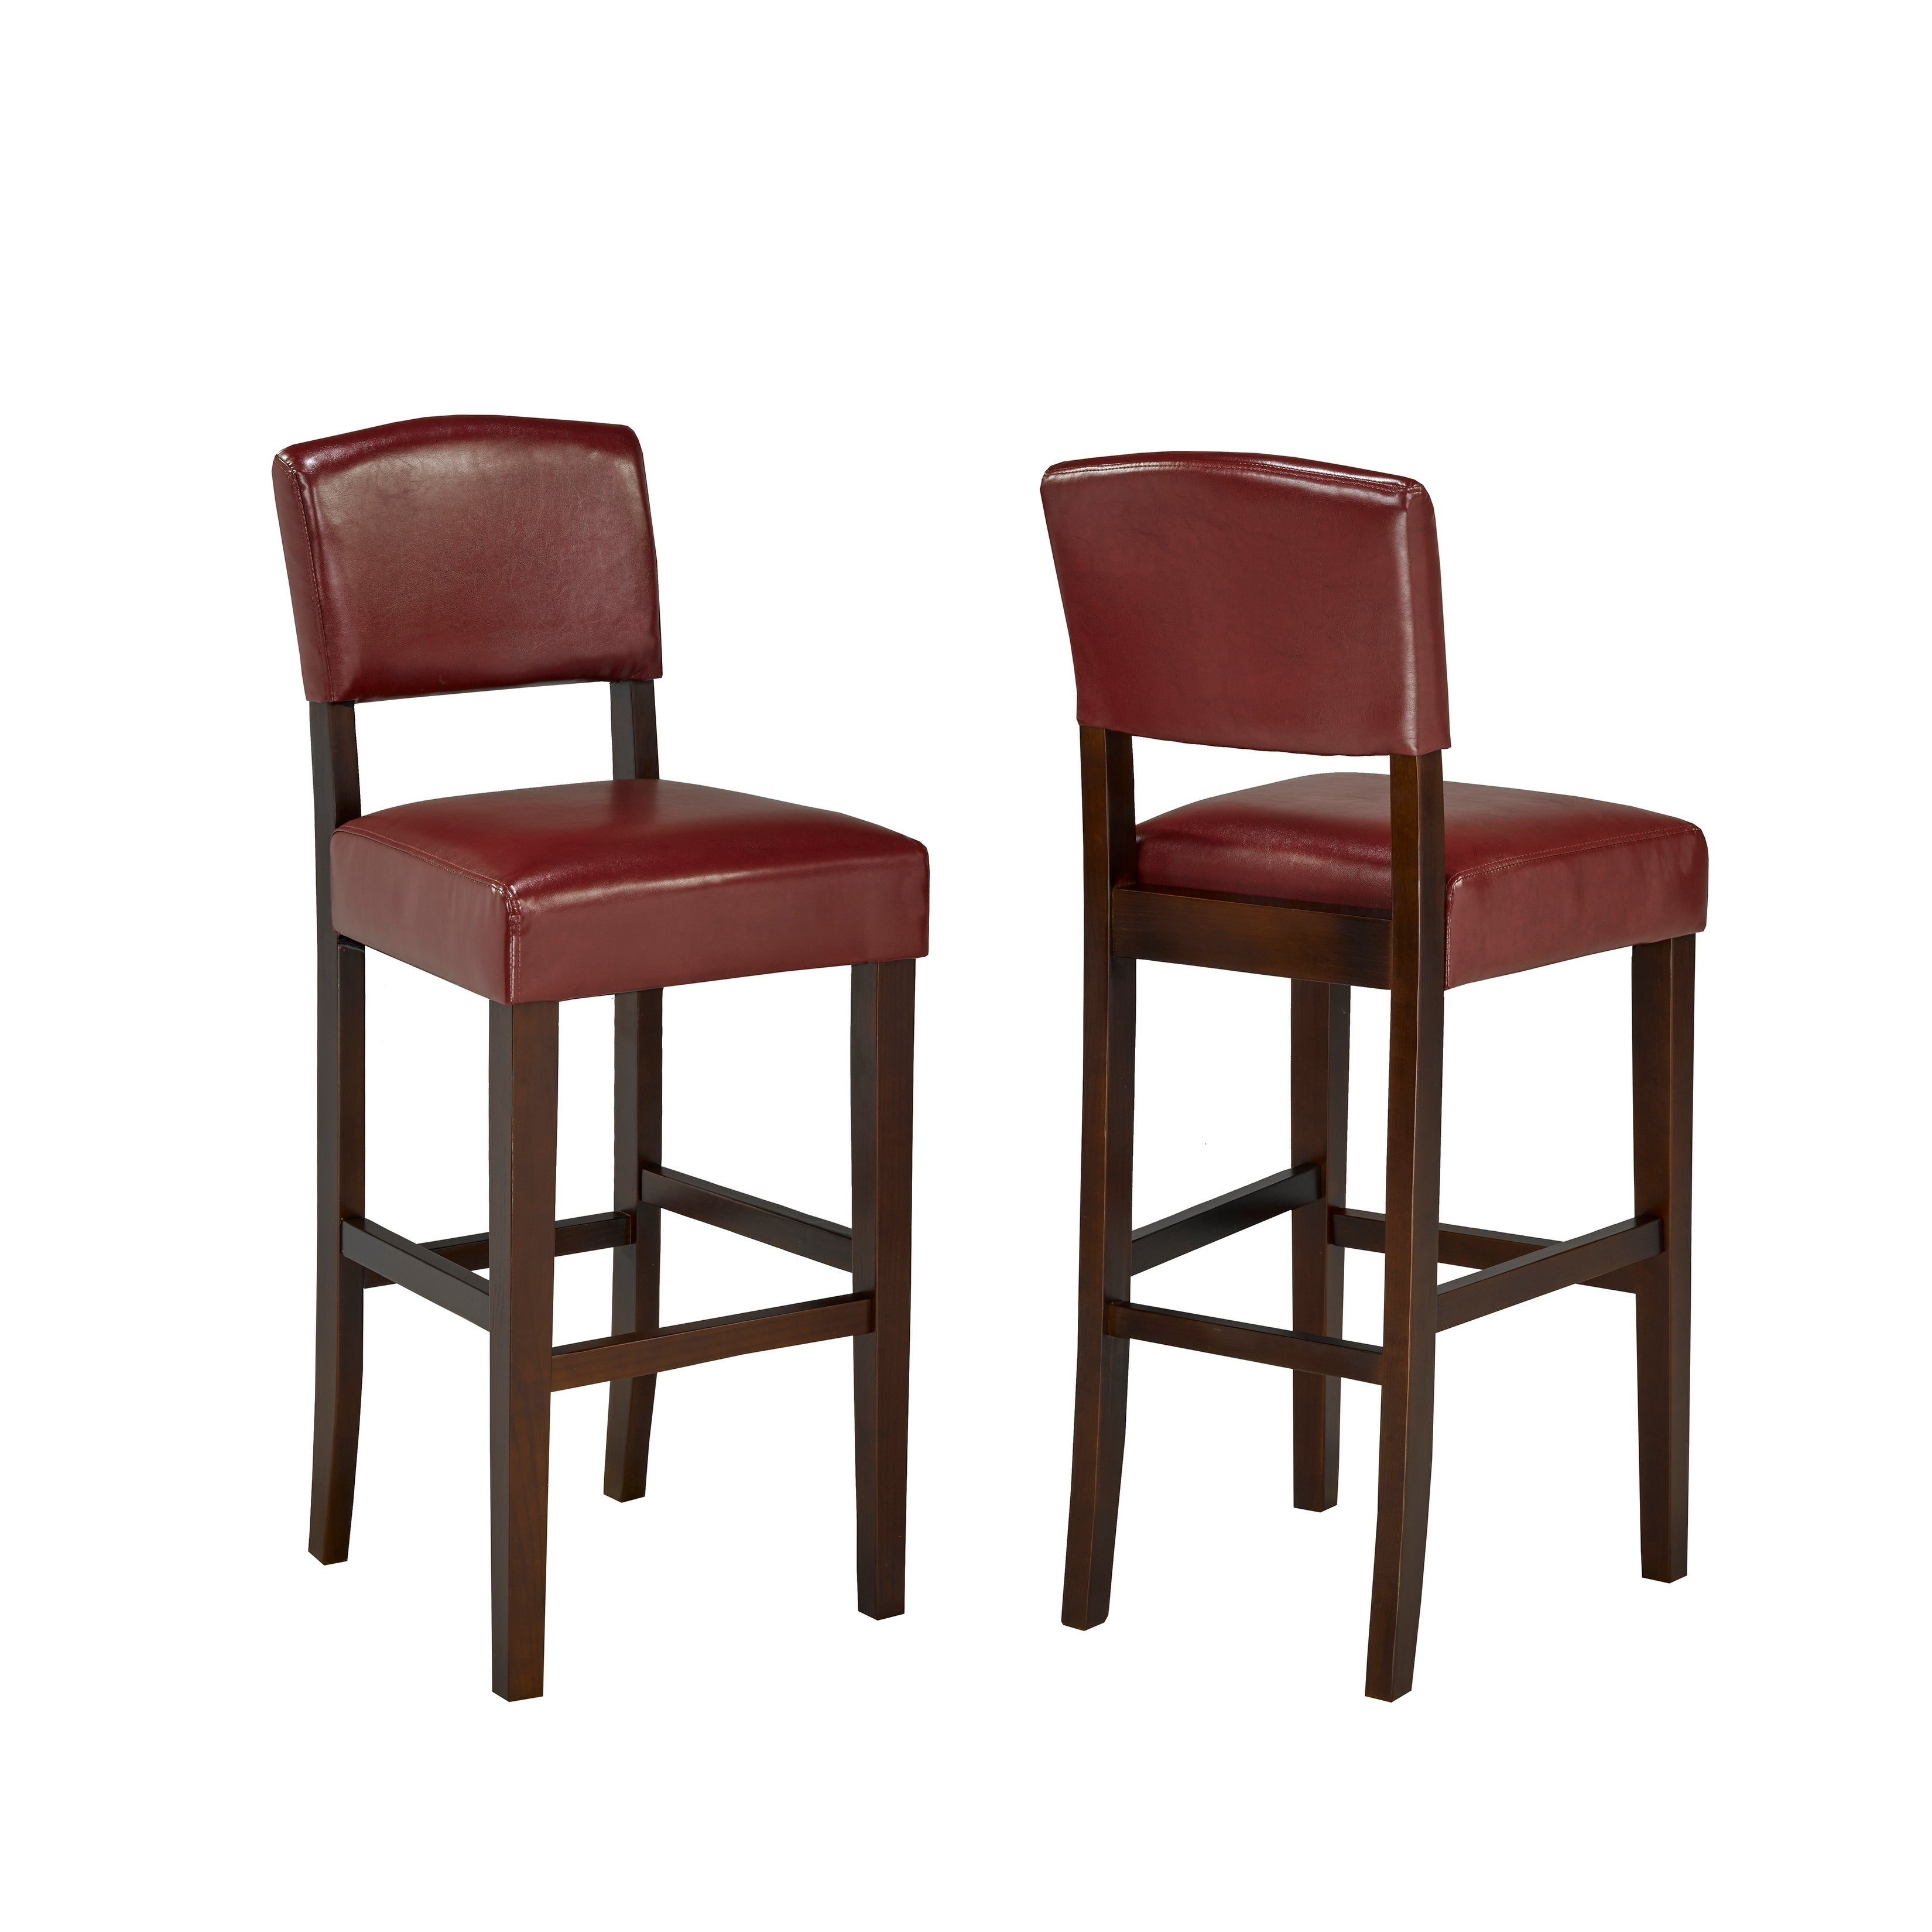 Phenomenal 29 Bar Stool Set Of 2 Red In 2019 Products Bar Stools Machost Co Dining Chair Design Ideas Machostcouk